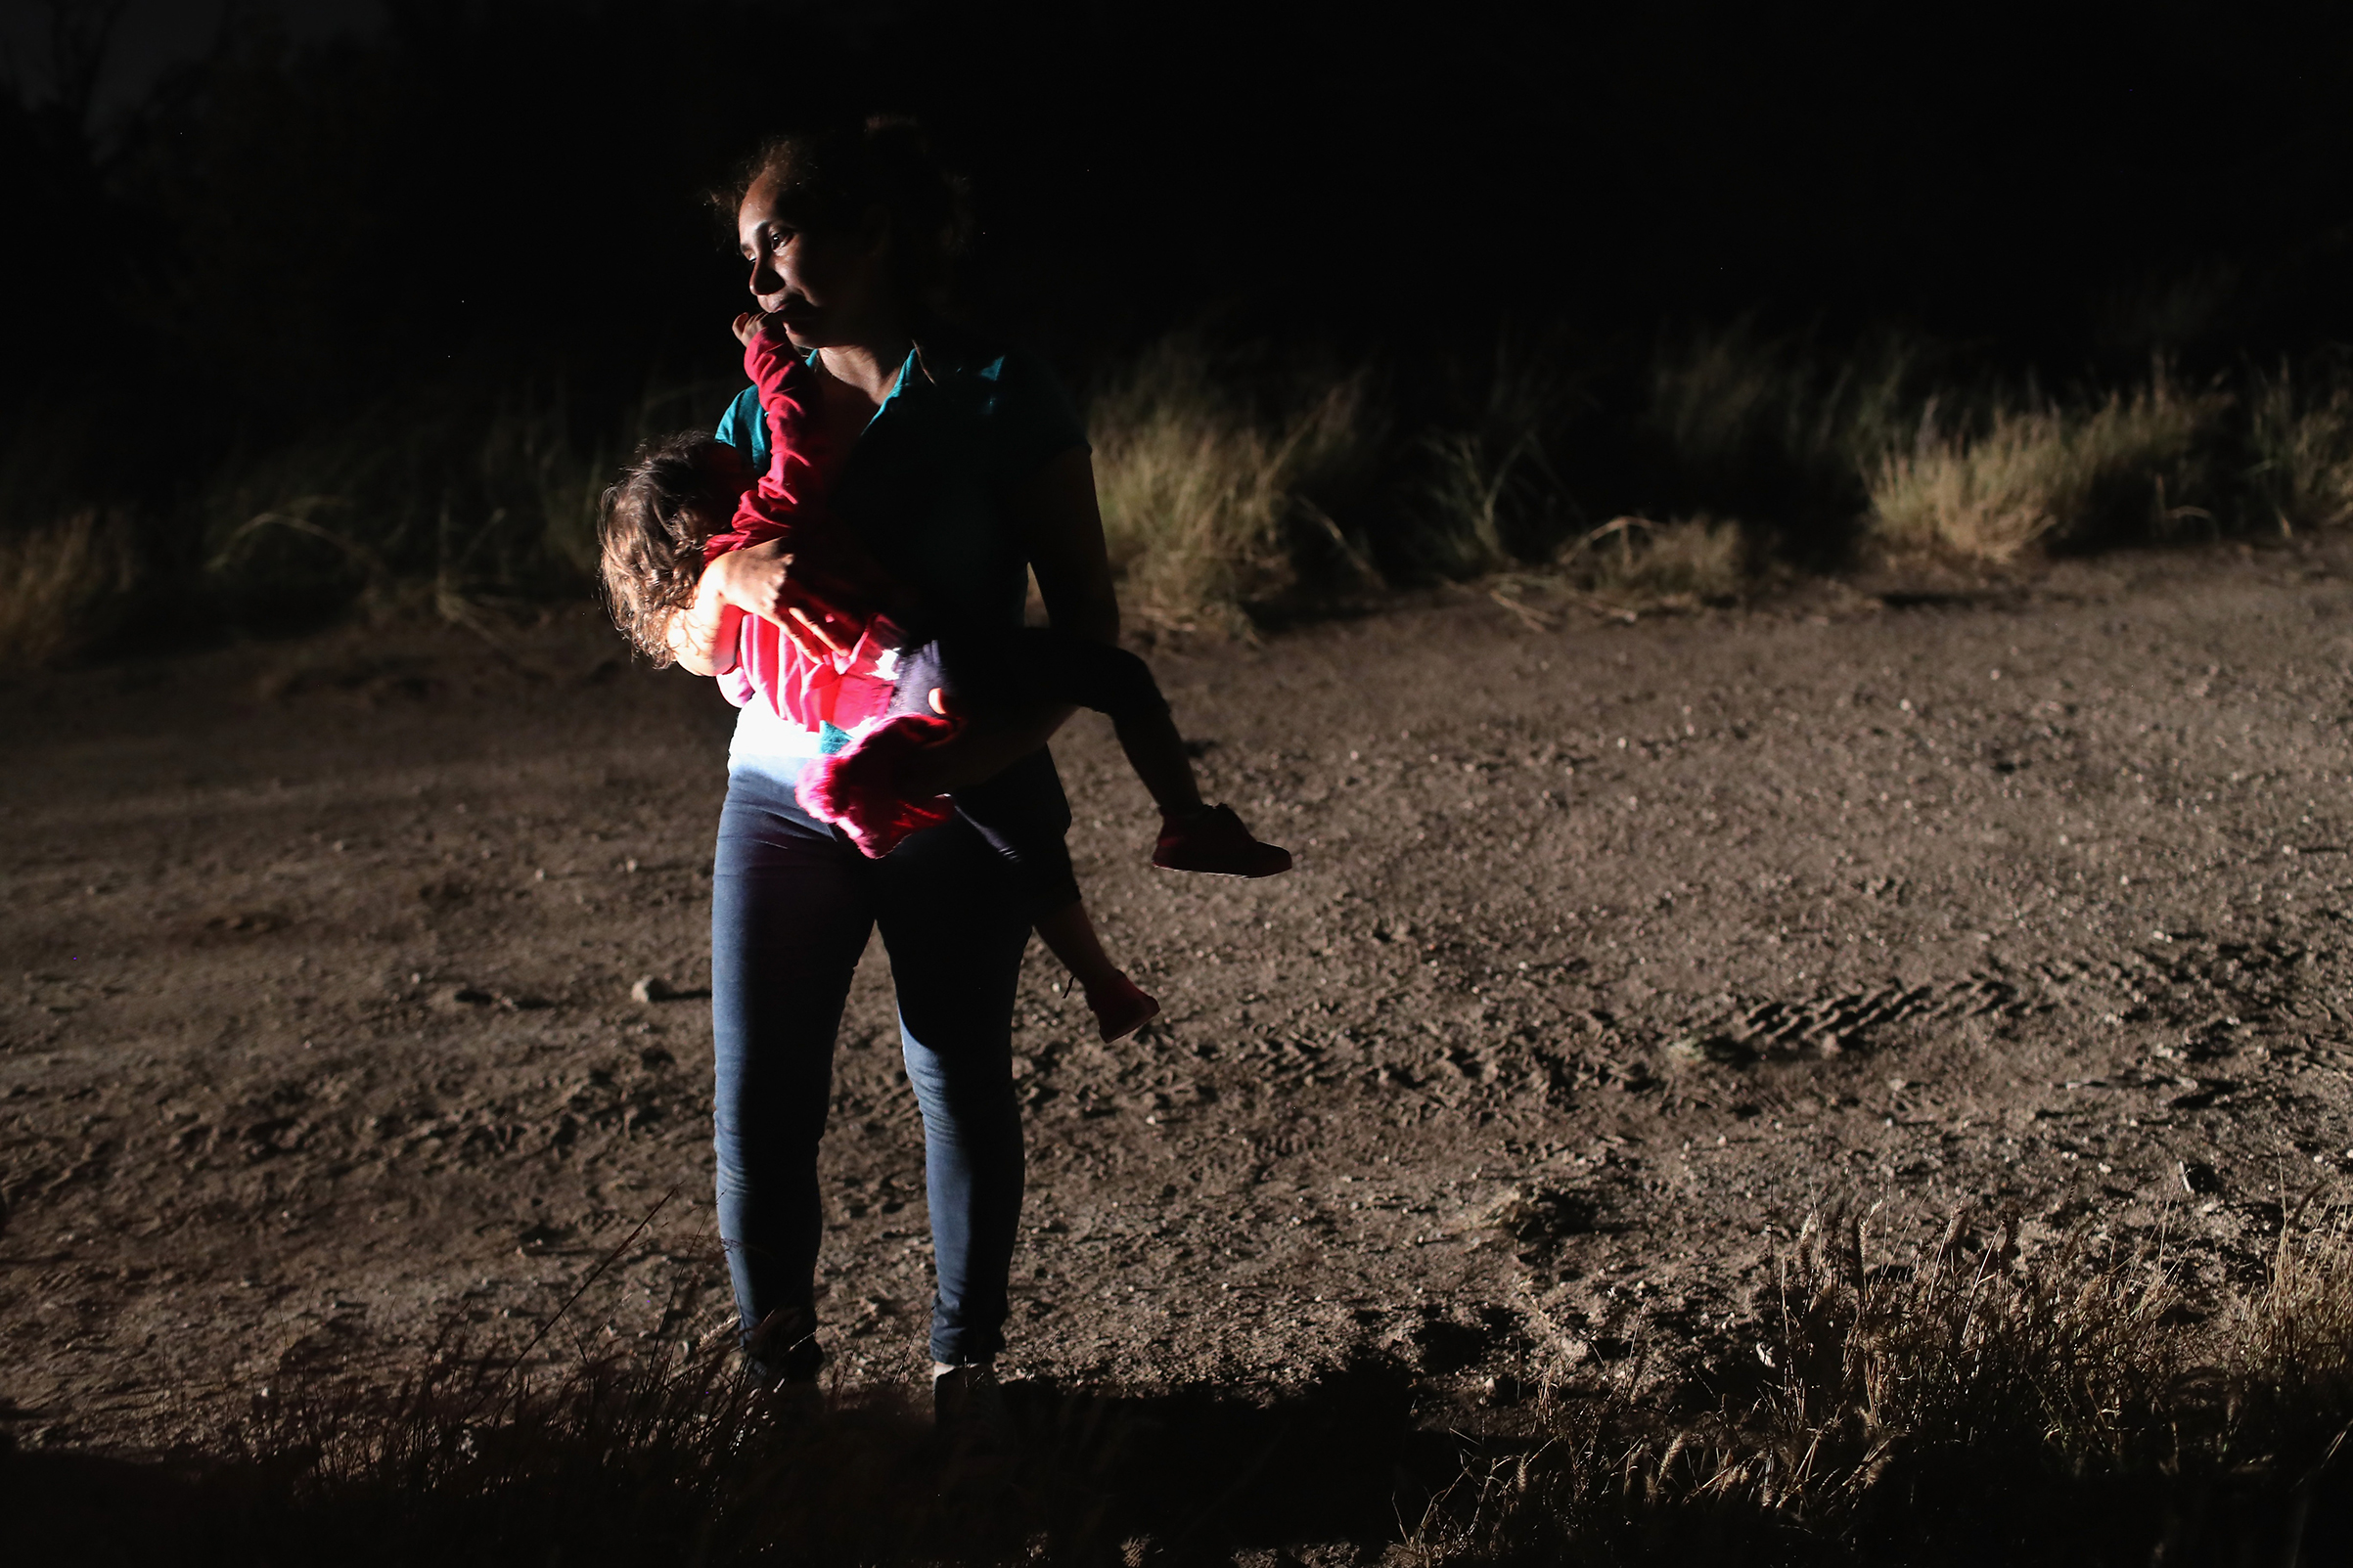 A Honduran mother holds her two-year-old daughter while being detained by U.S. Border Patrol agents near the U.S.-Mexico border on June 12, 2018 in McAllen, Texas. The asylum seekers were detained before being sent to a processing center for possible separation. Customs and Border Protection (CBP) is executing the Trump administration's  zero tolerance  policy towards undocumented immigrants.